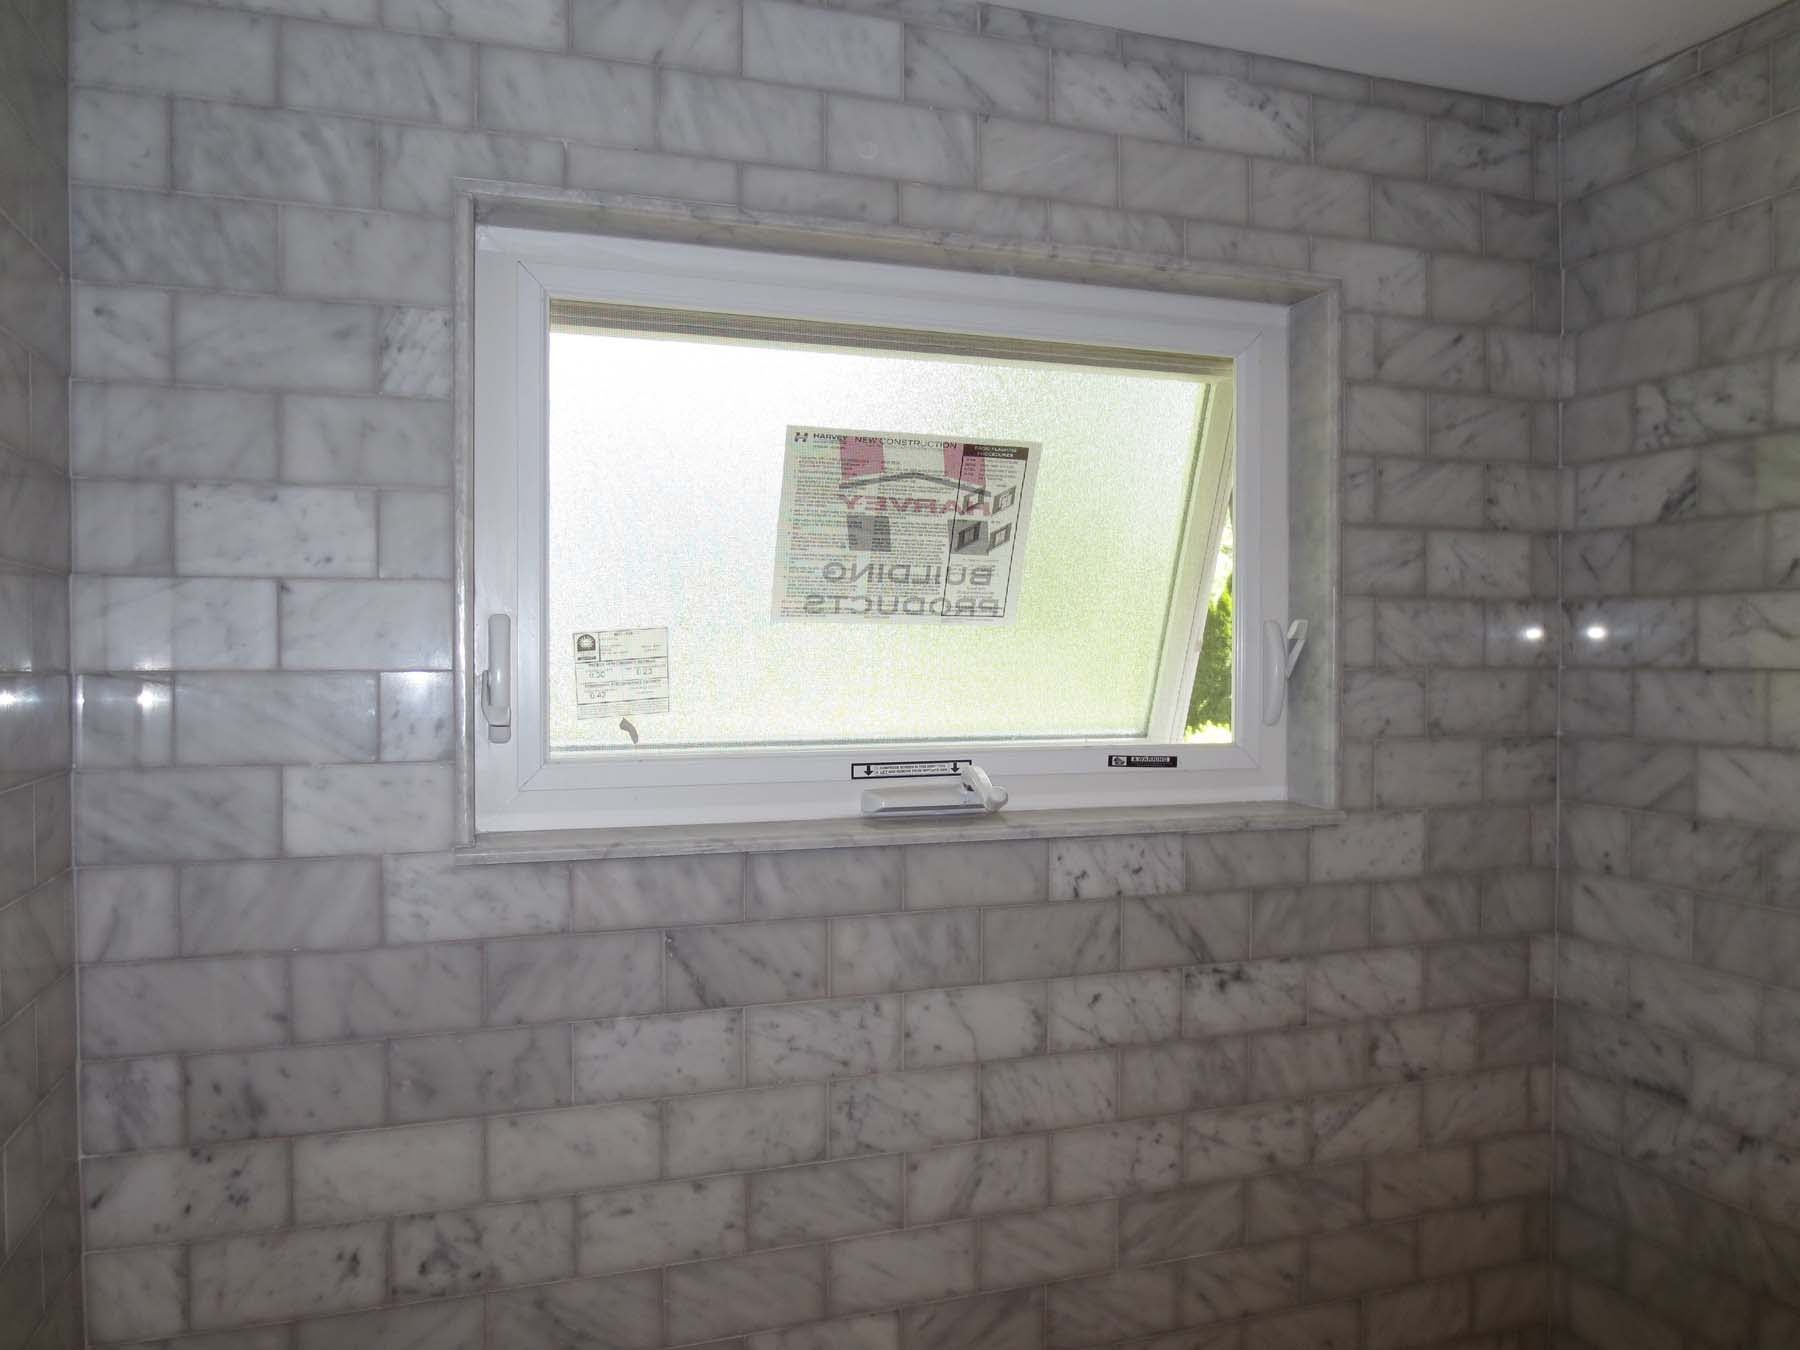 Bathroom remodeling ideas with window over tub shower for Bathroom remodelers in my area